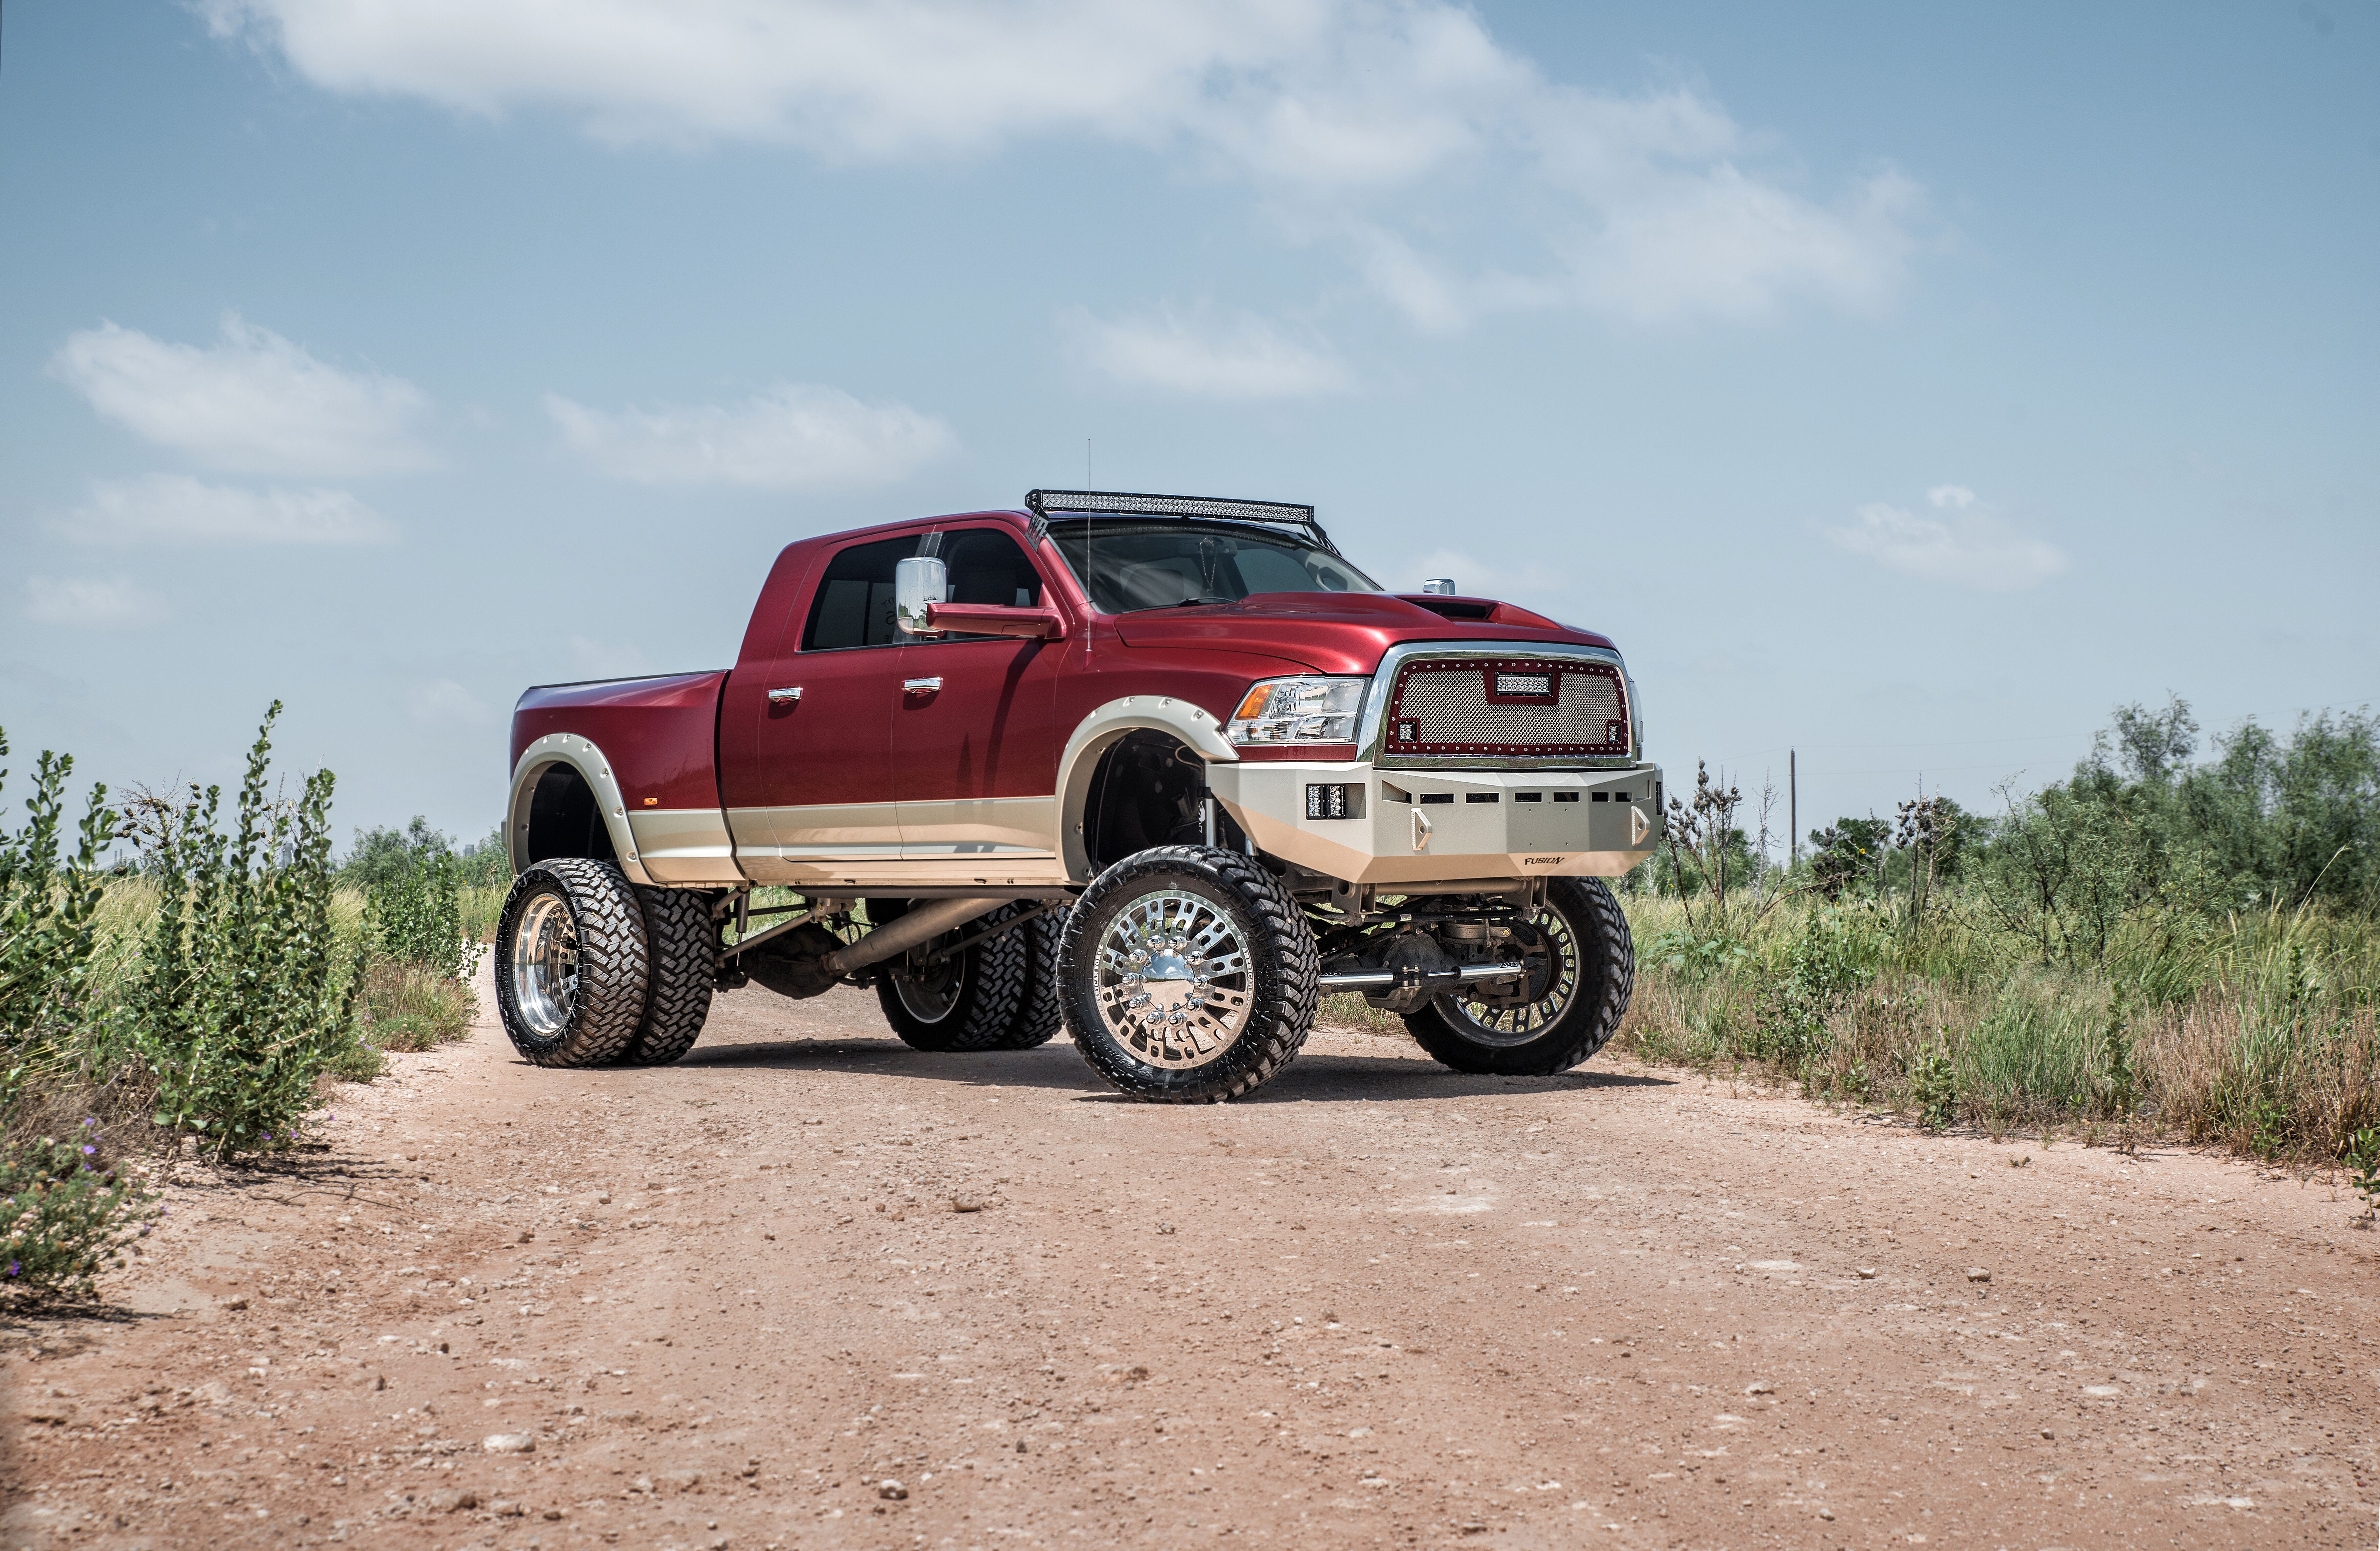 Sewell Ford Odessa Tx >> Gallery: Odessa, TX: Complete Customs